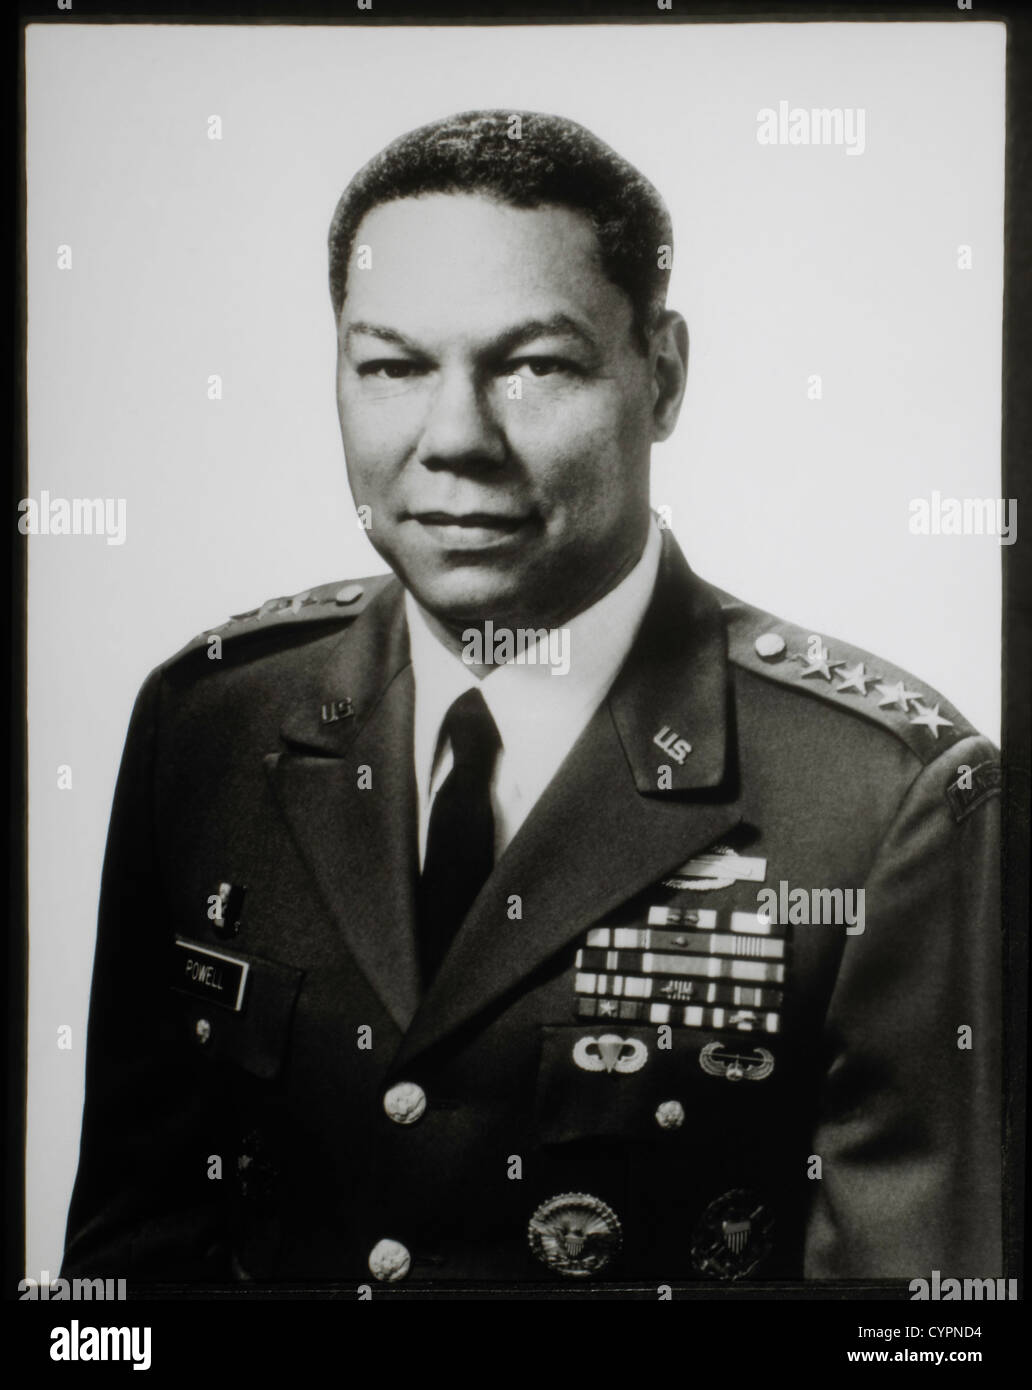 Colin Powell, Chairman of Joint Chiefs of Staff, 1989-1993, Highest US Military Position in Department of Defense - Stock Image